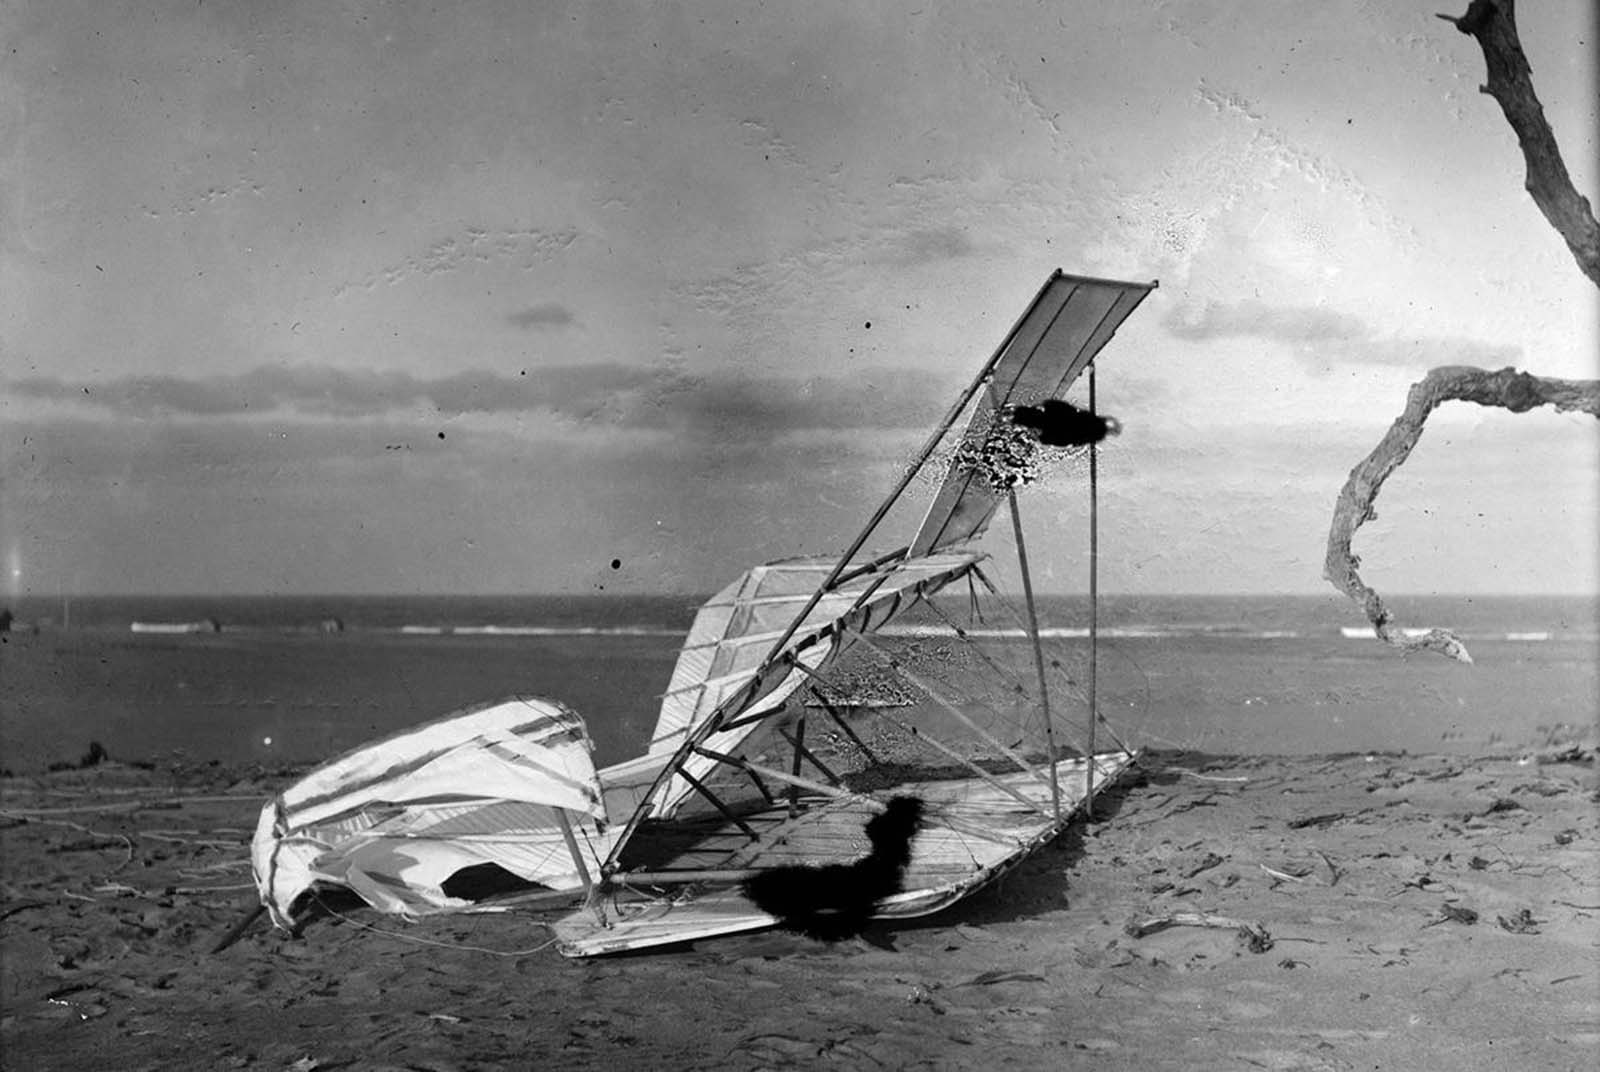 Crumpled glider, wrecked by the wind, on Hill of the Wreck, on October 10, 1900.